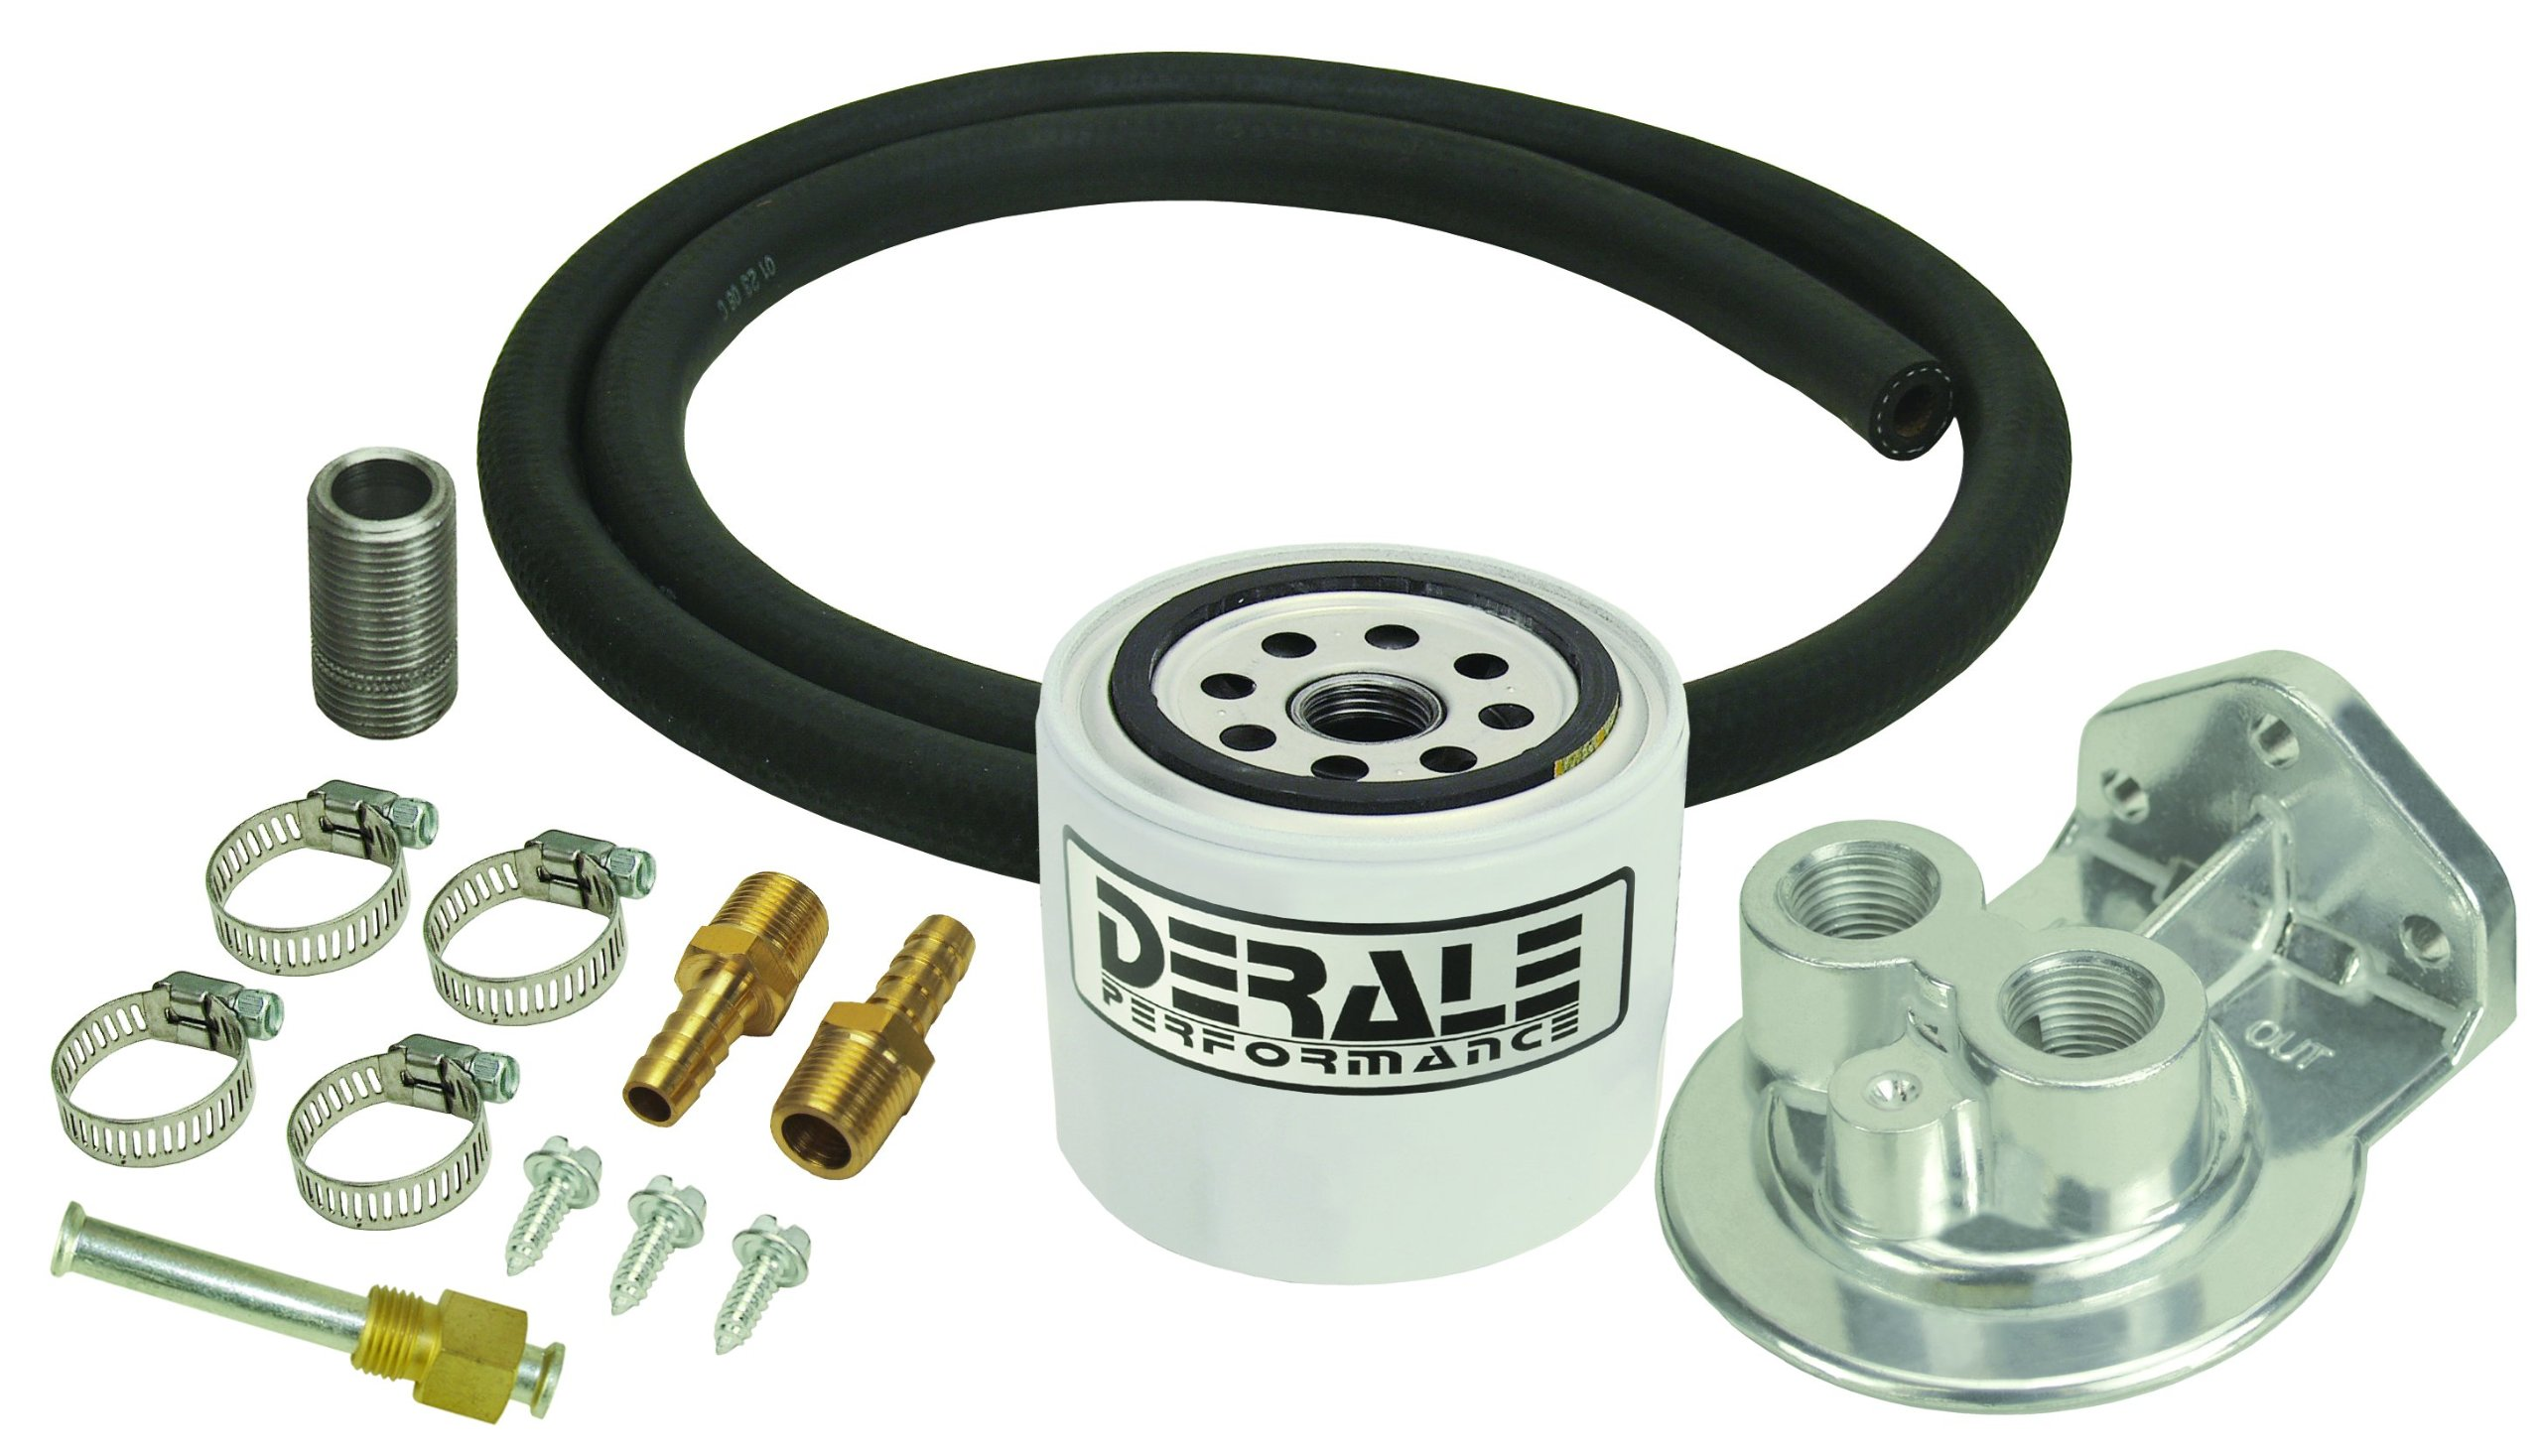 Derale 13090 Transmission Filter Kit